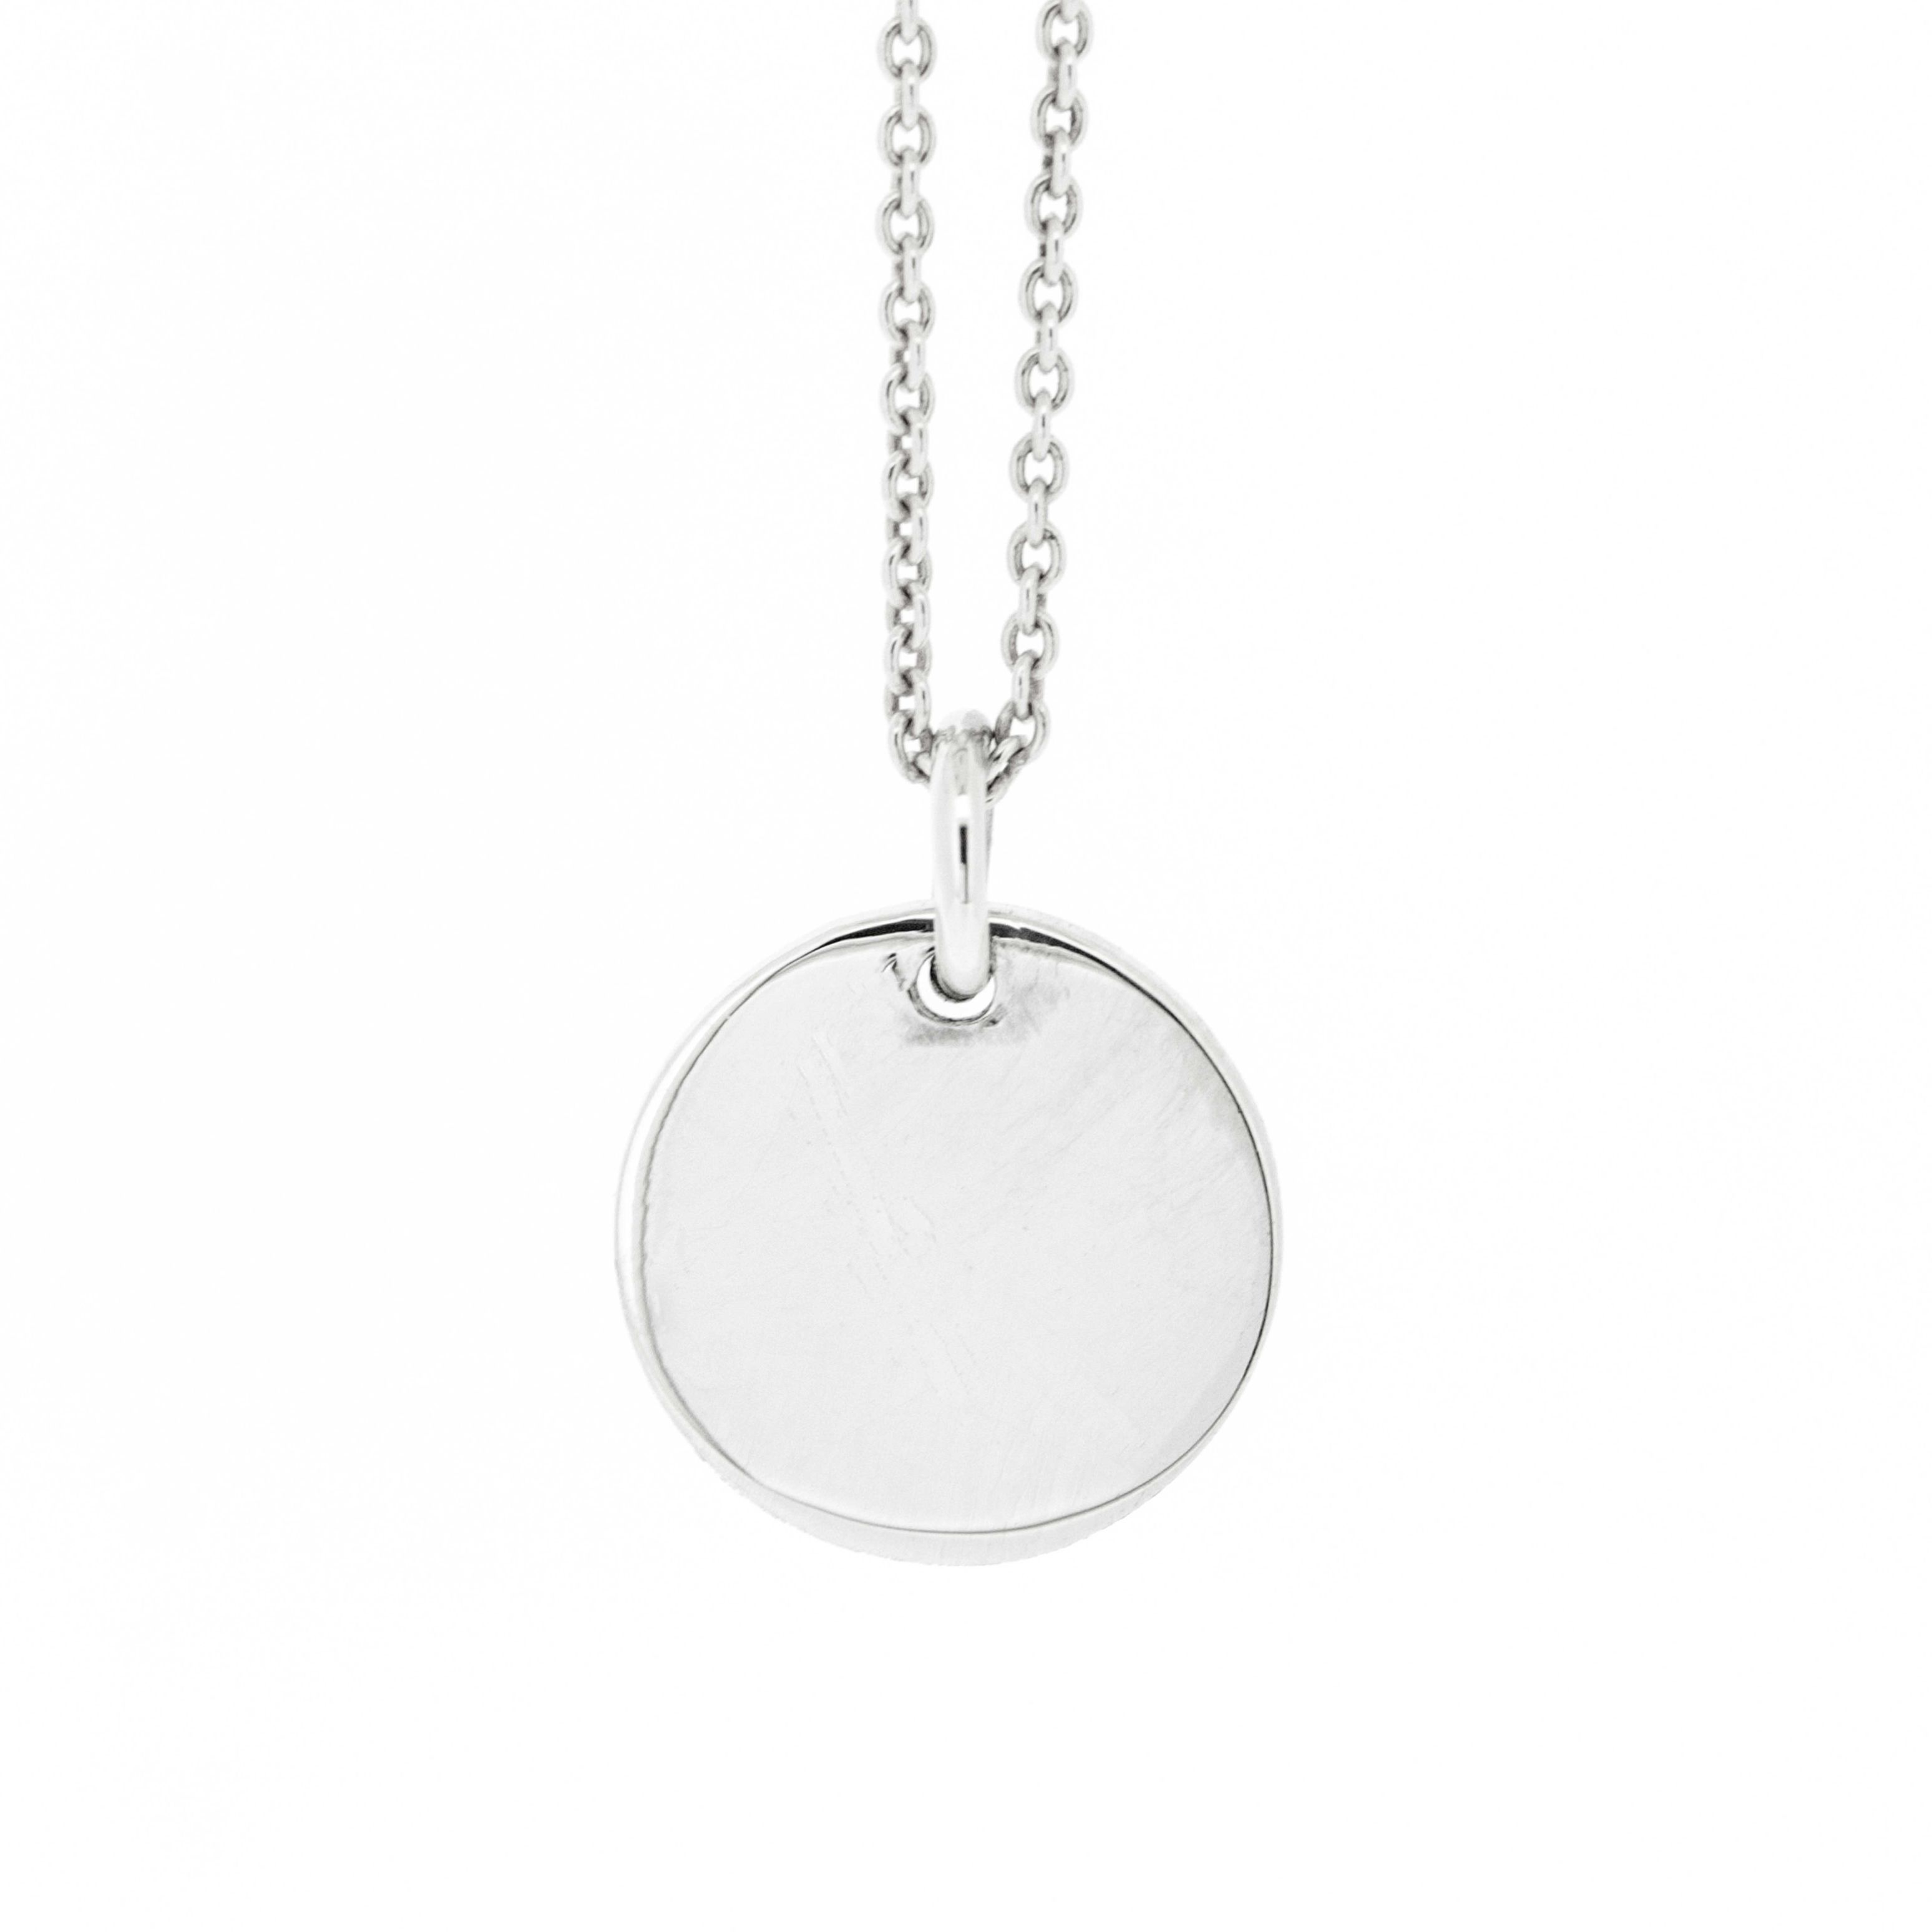 12mm Disc Tag Pendant